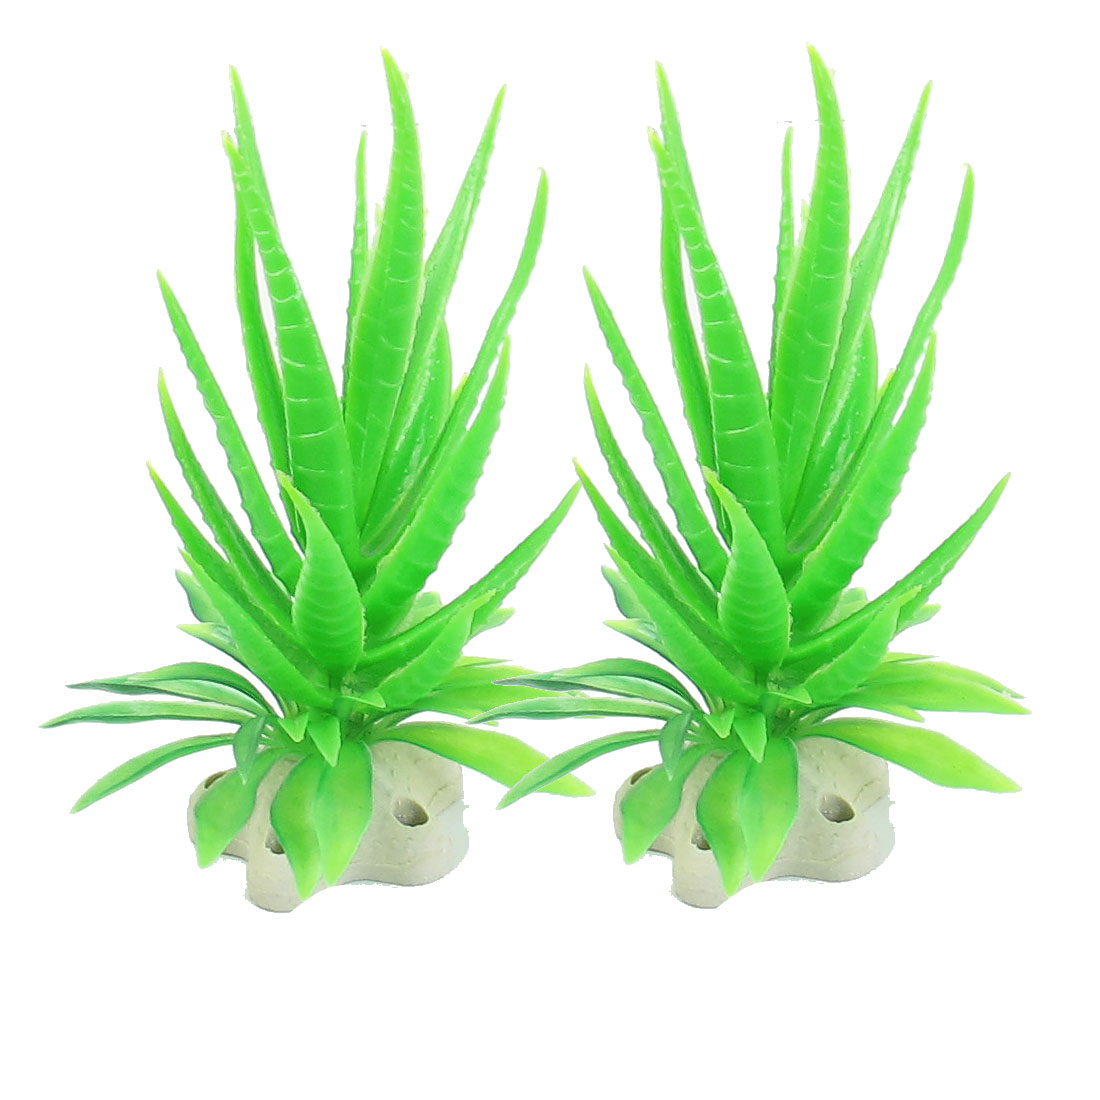 "2 Pcs 4.7"" Hight Green Plastic Aquatic Plants for Aquarium Fish Tank"